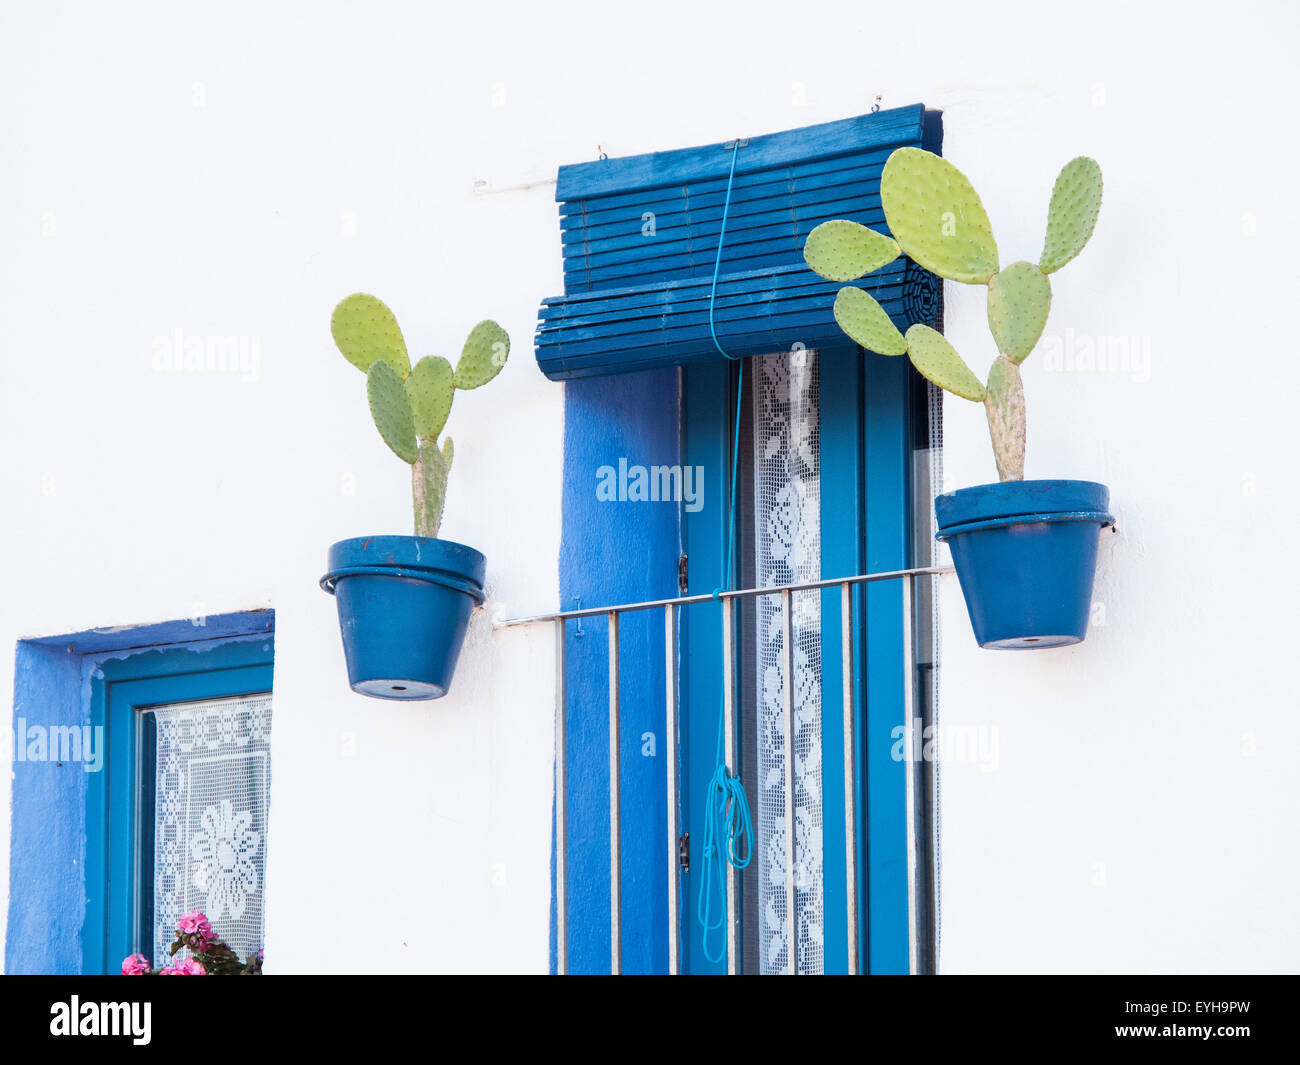 Pot plants on a house in Spain - Stock Image